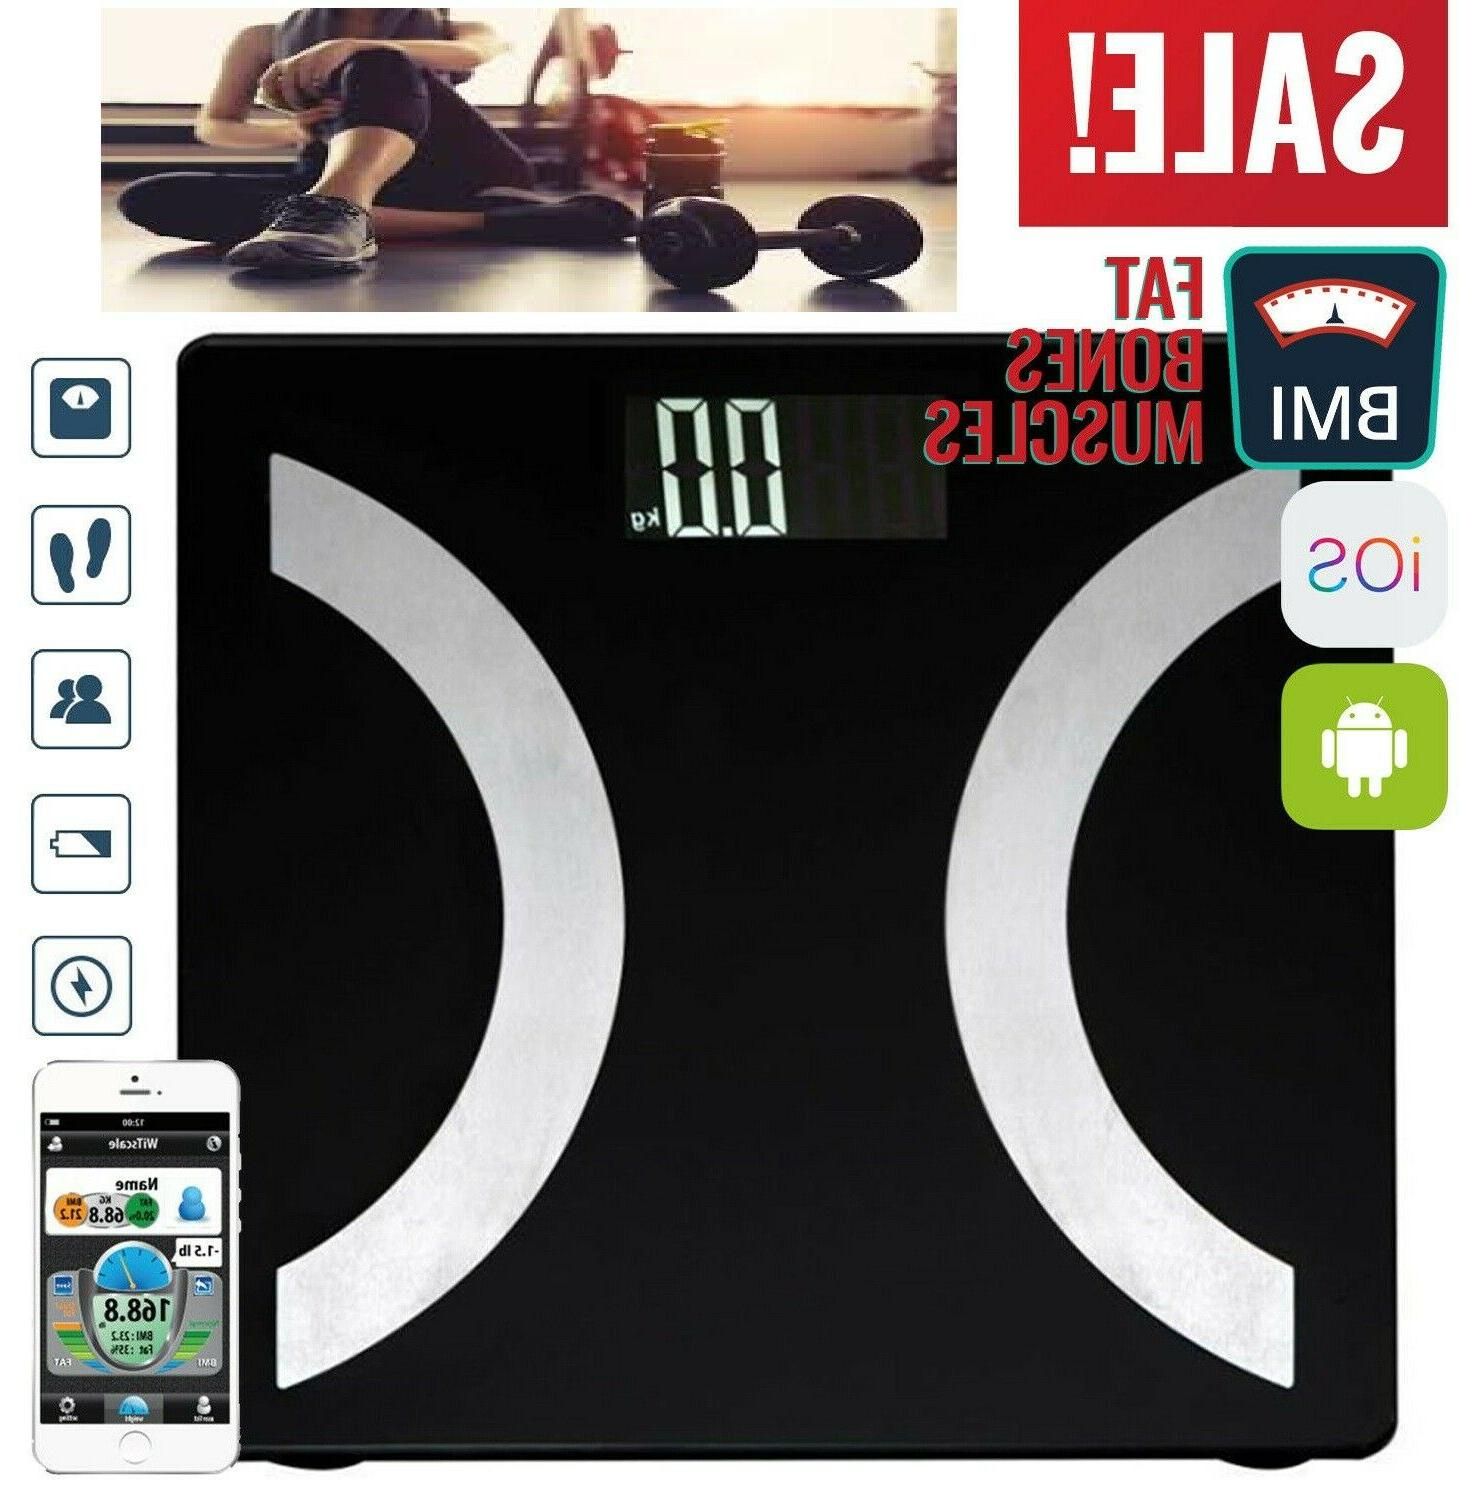 bathroom scales weight scale smart body fat